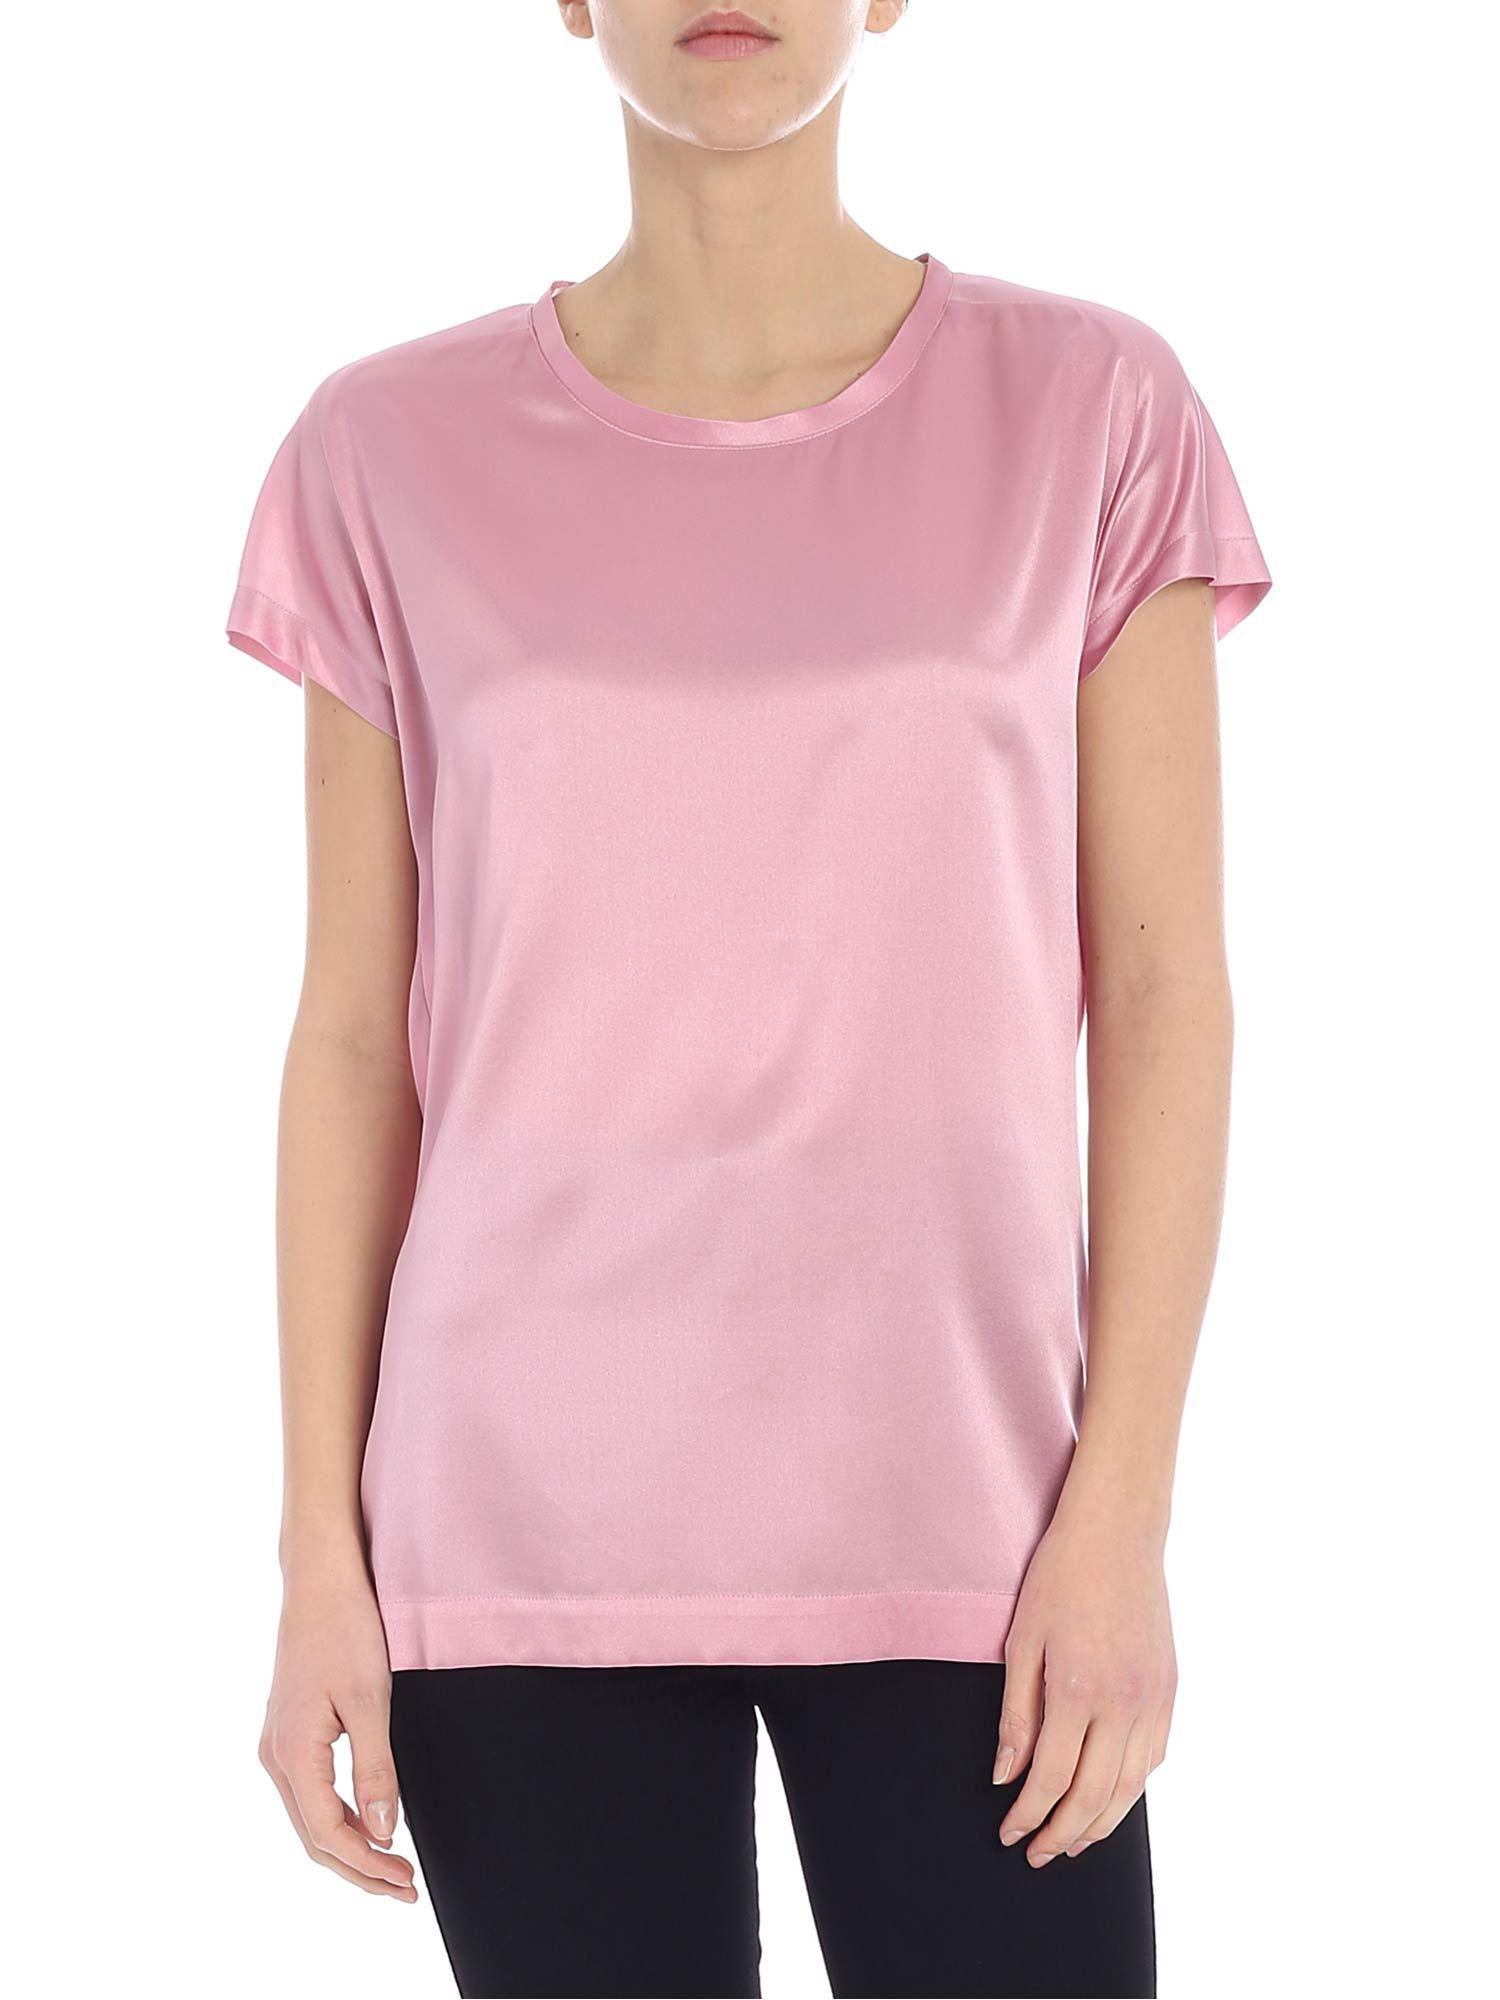 4f2c457d0a1 Lyst - Pinko Farisa 11 Short-sleeved Pink Blouse in Pink